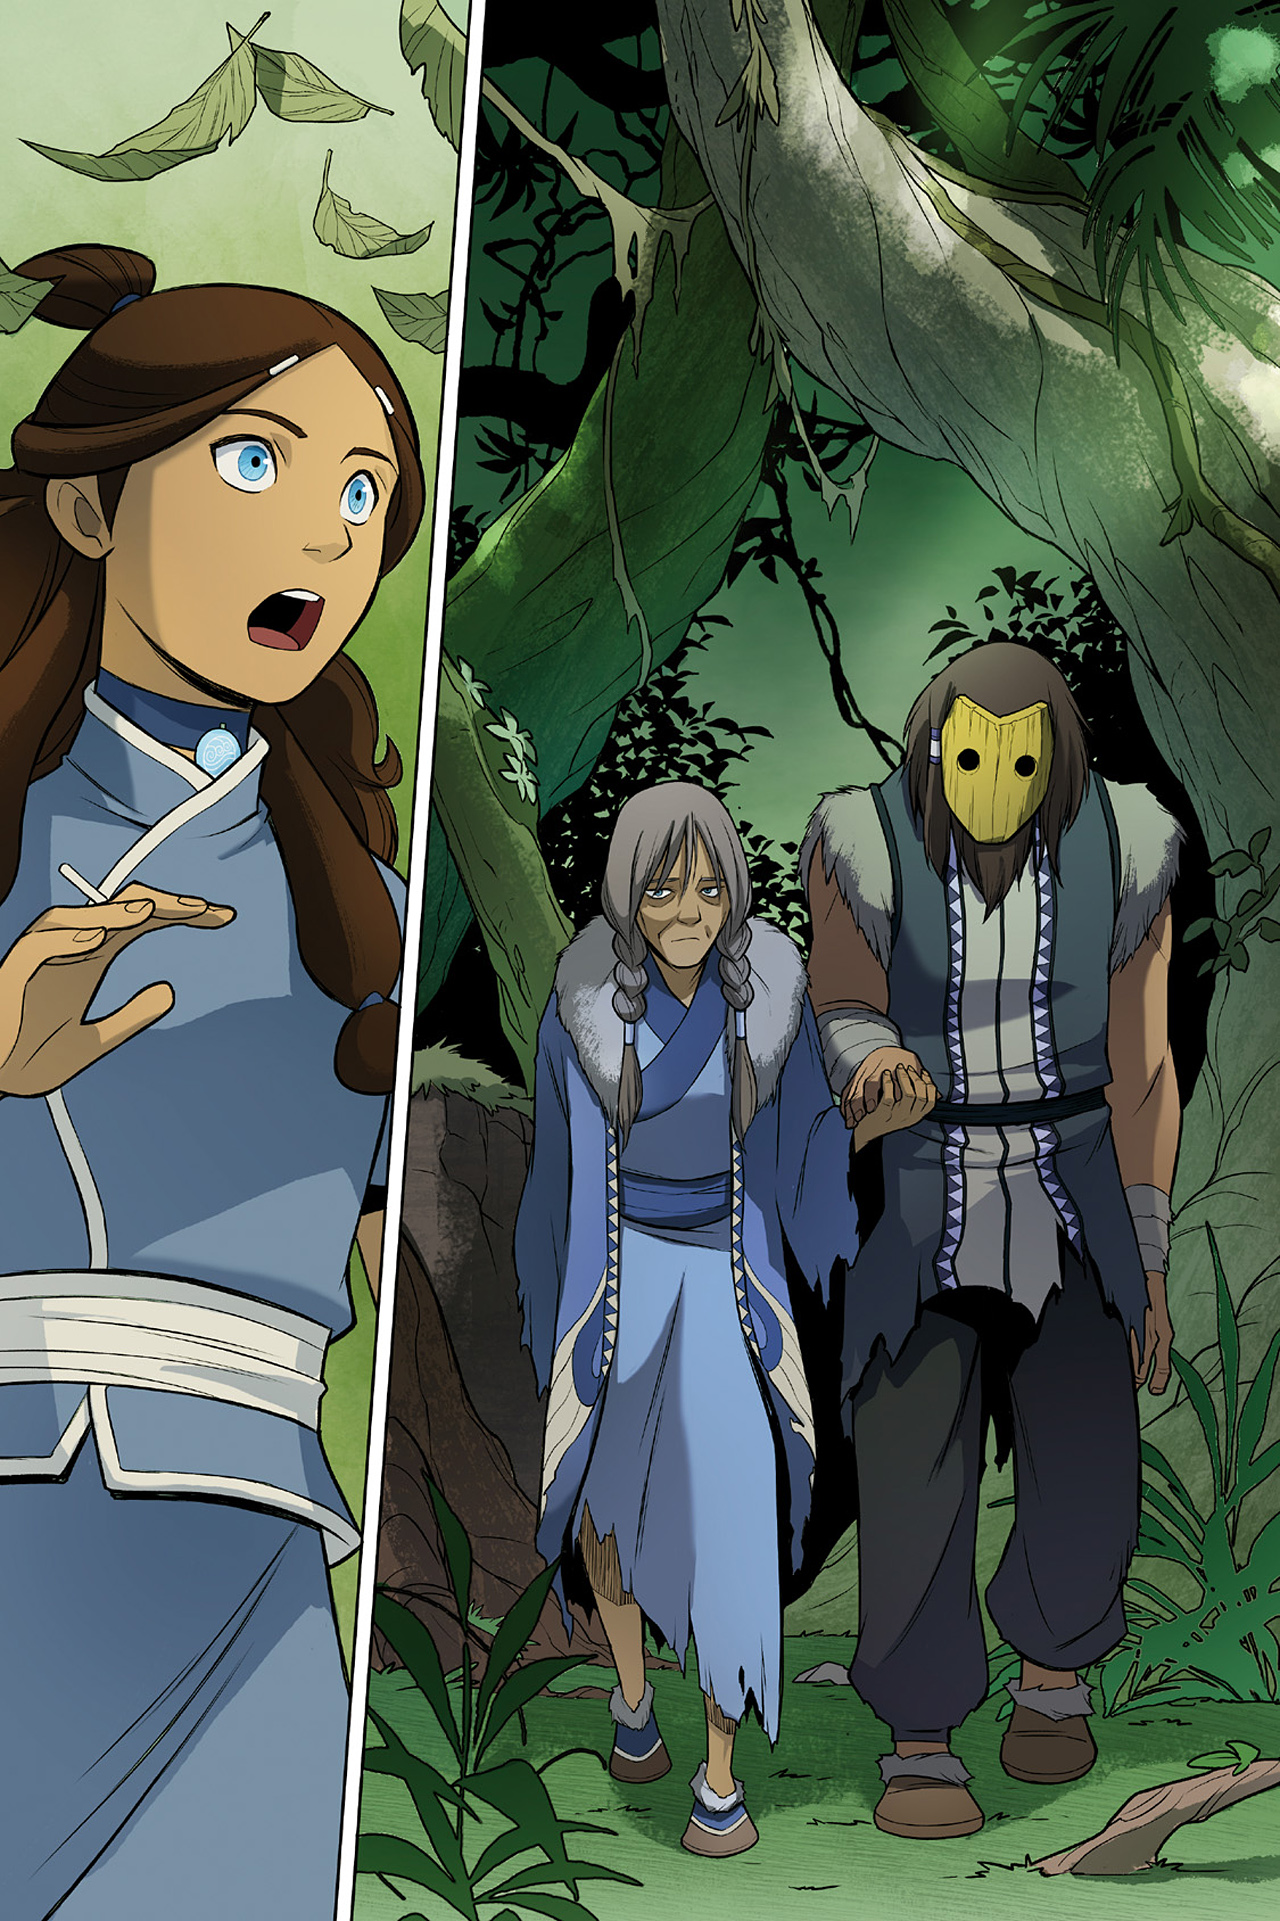 Read online Nickelodeon Avatar: The Last Airbender - The Search comic -  Issue # Part 2 - 59